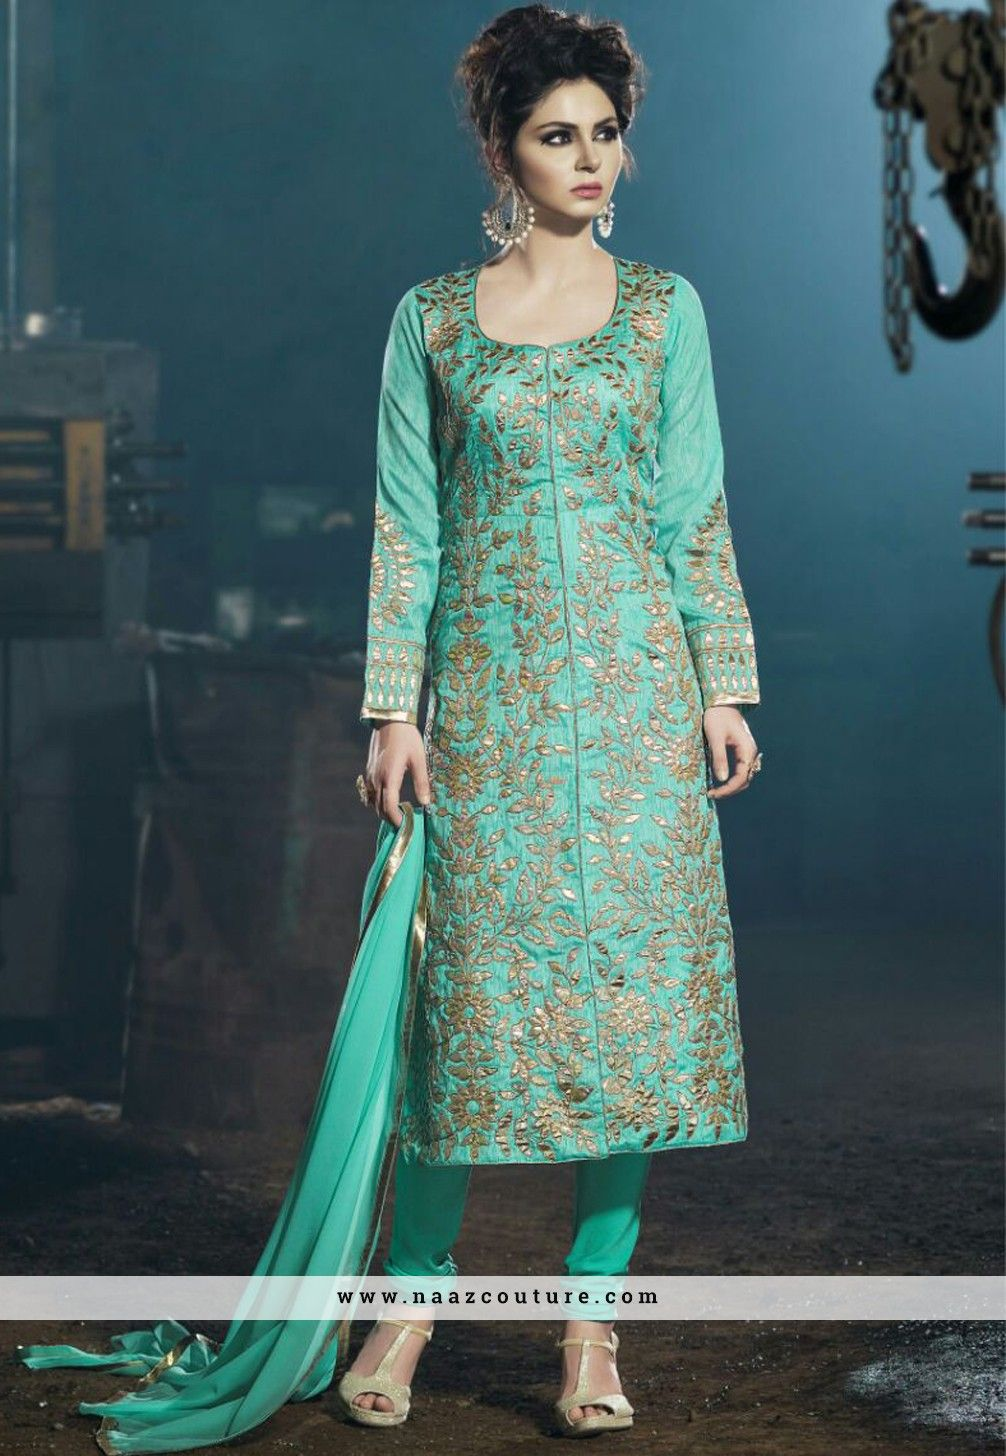 Turquoise Indian Wedding Wear Punjabi Salwar Suit … | punjabi …